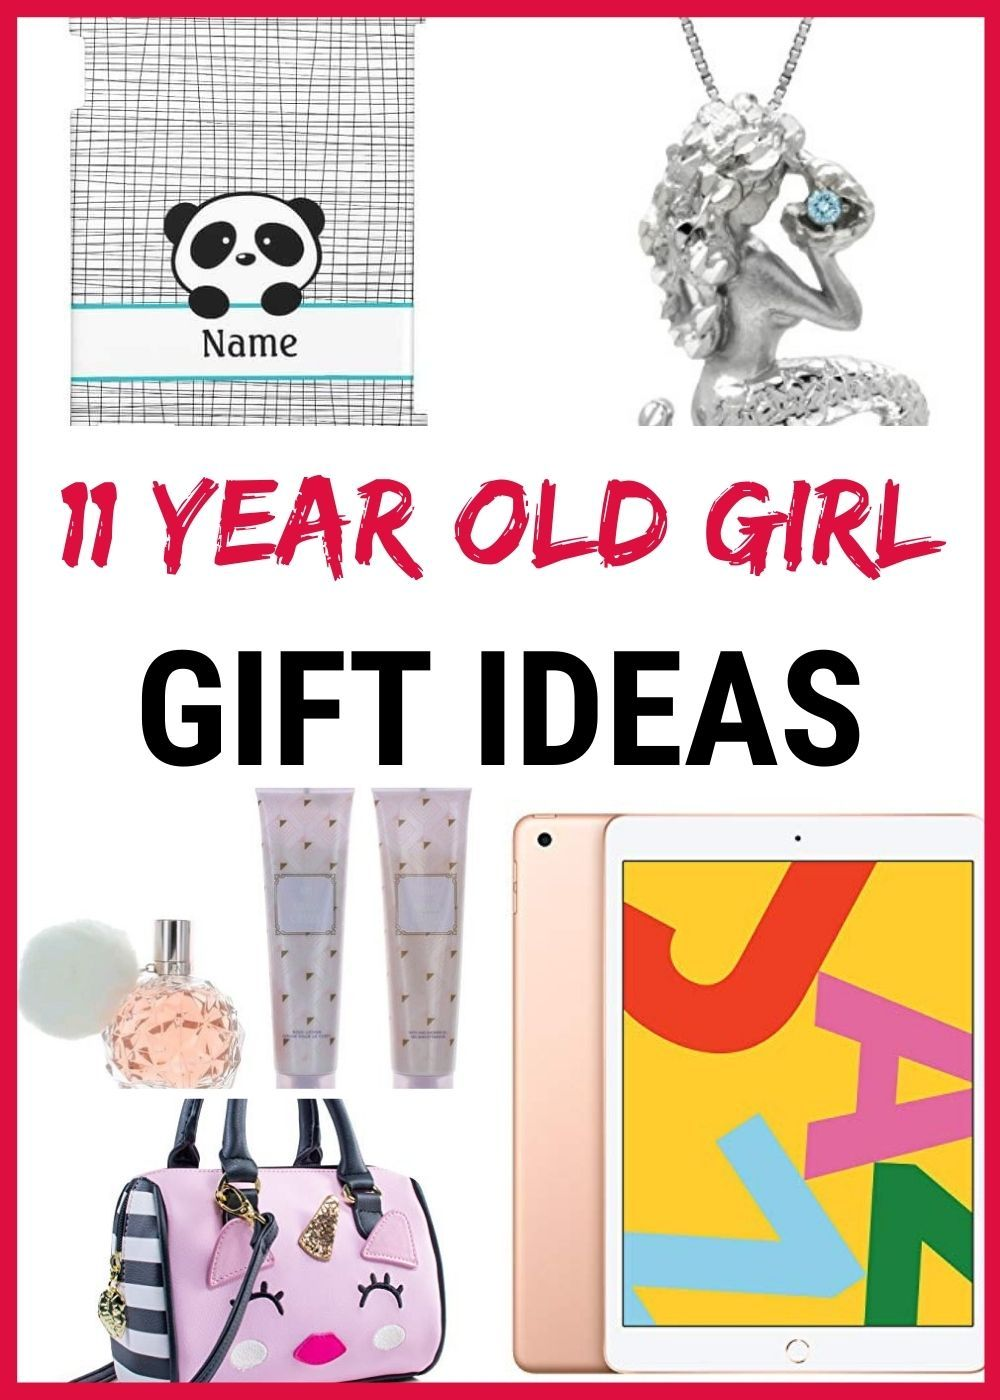 Best Gifts For 11 Year Old Girls 2020 In 2020 Tween Girl Gifts Top Gifts For Girls Tween Gifts